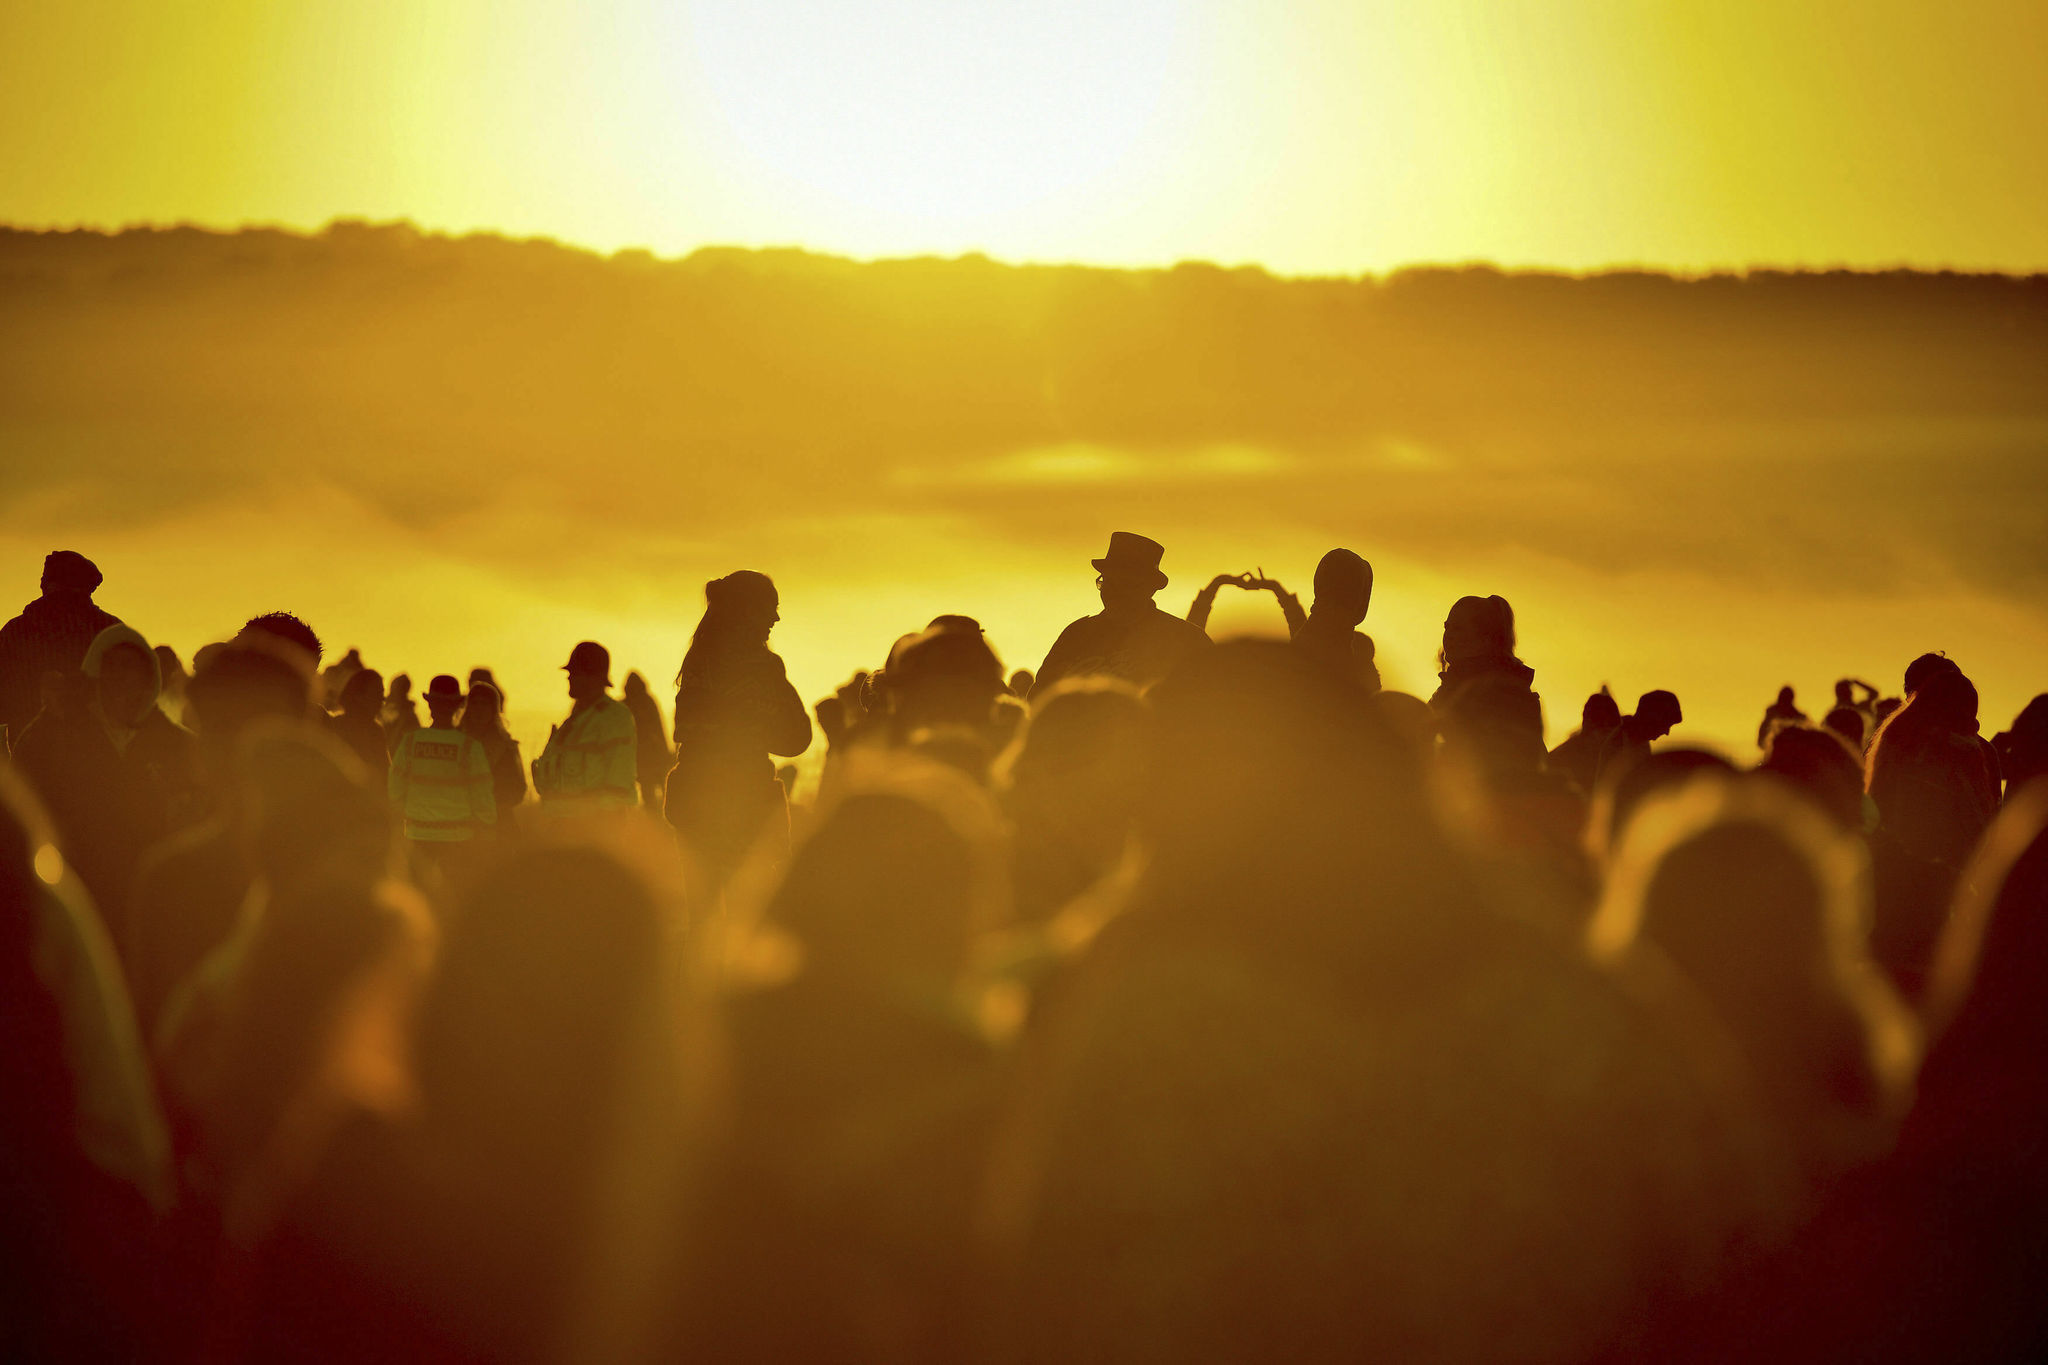 People turn to face the rising sun at Stonehenge as crowds of people gather to celebrate the dawn of